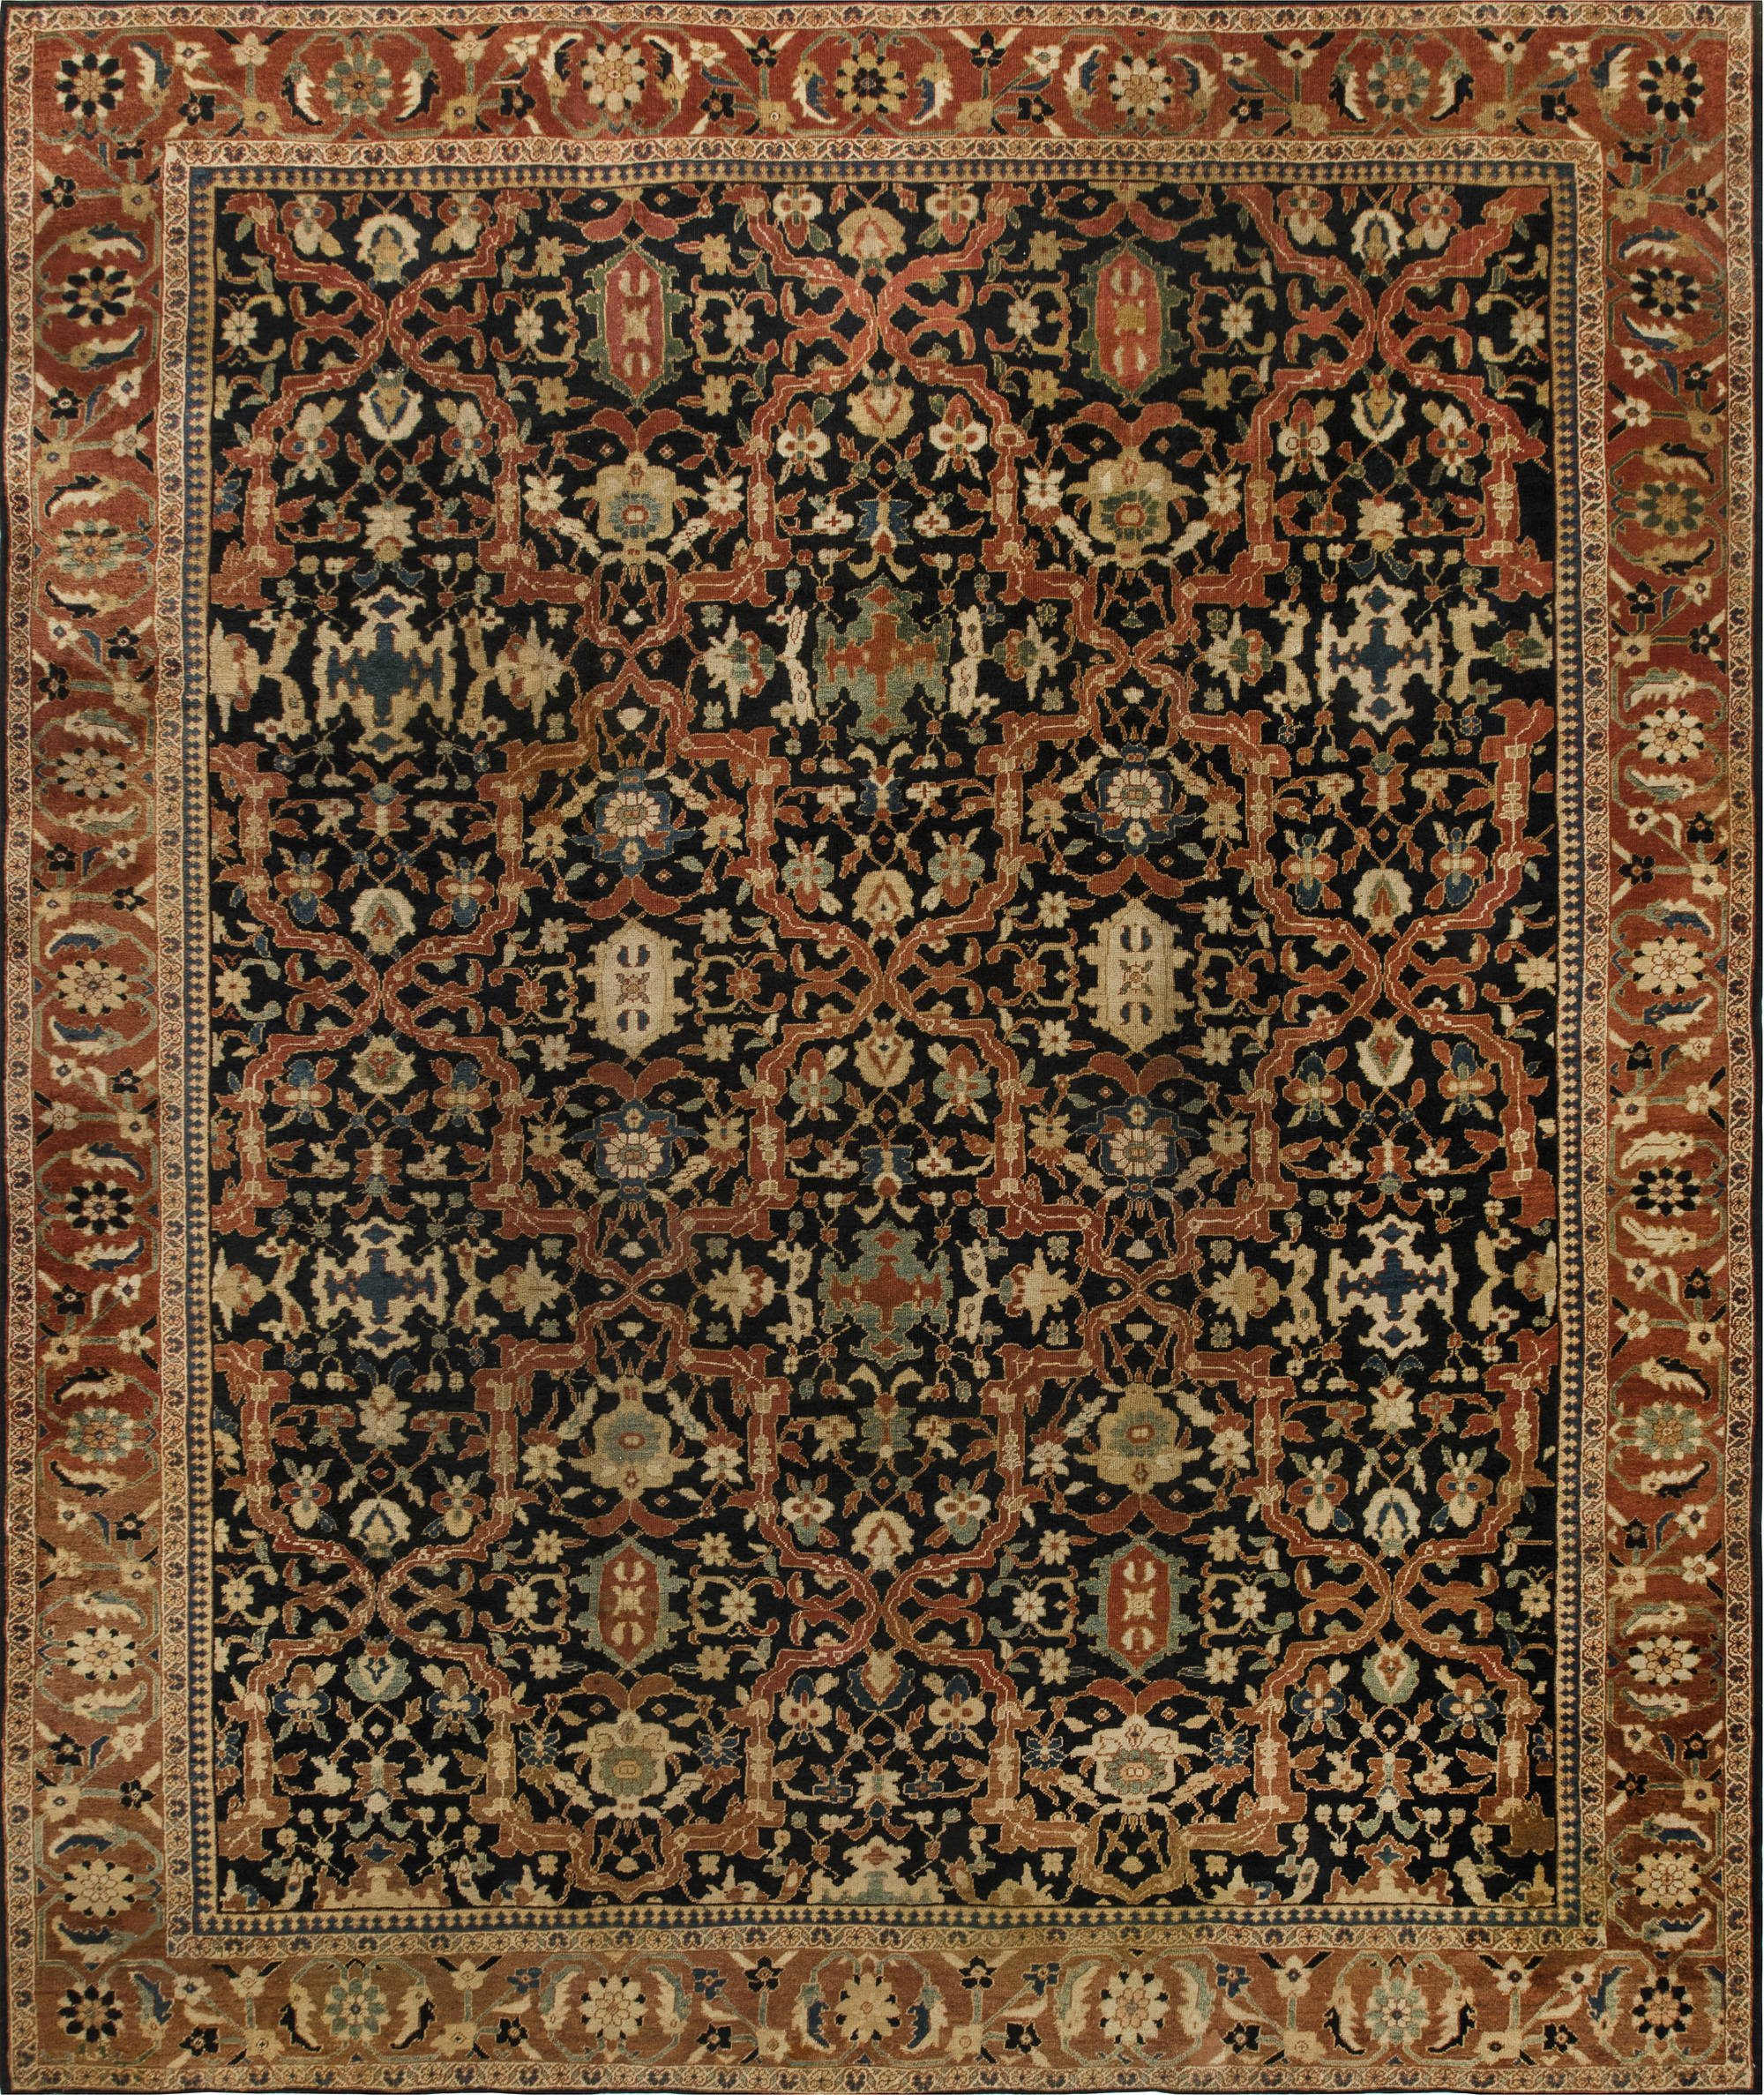 19th Century Persian Sultanabad Brick Red Handwoven Wool Carpet BB6673